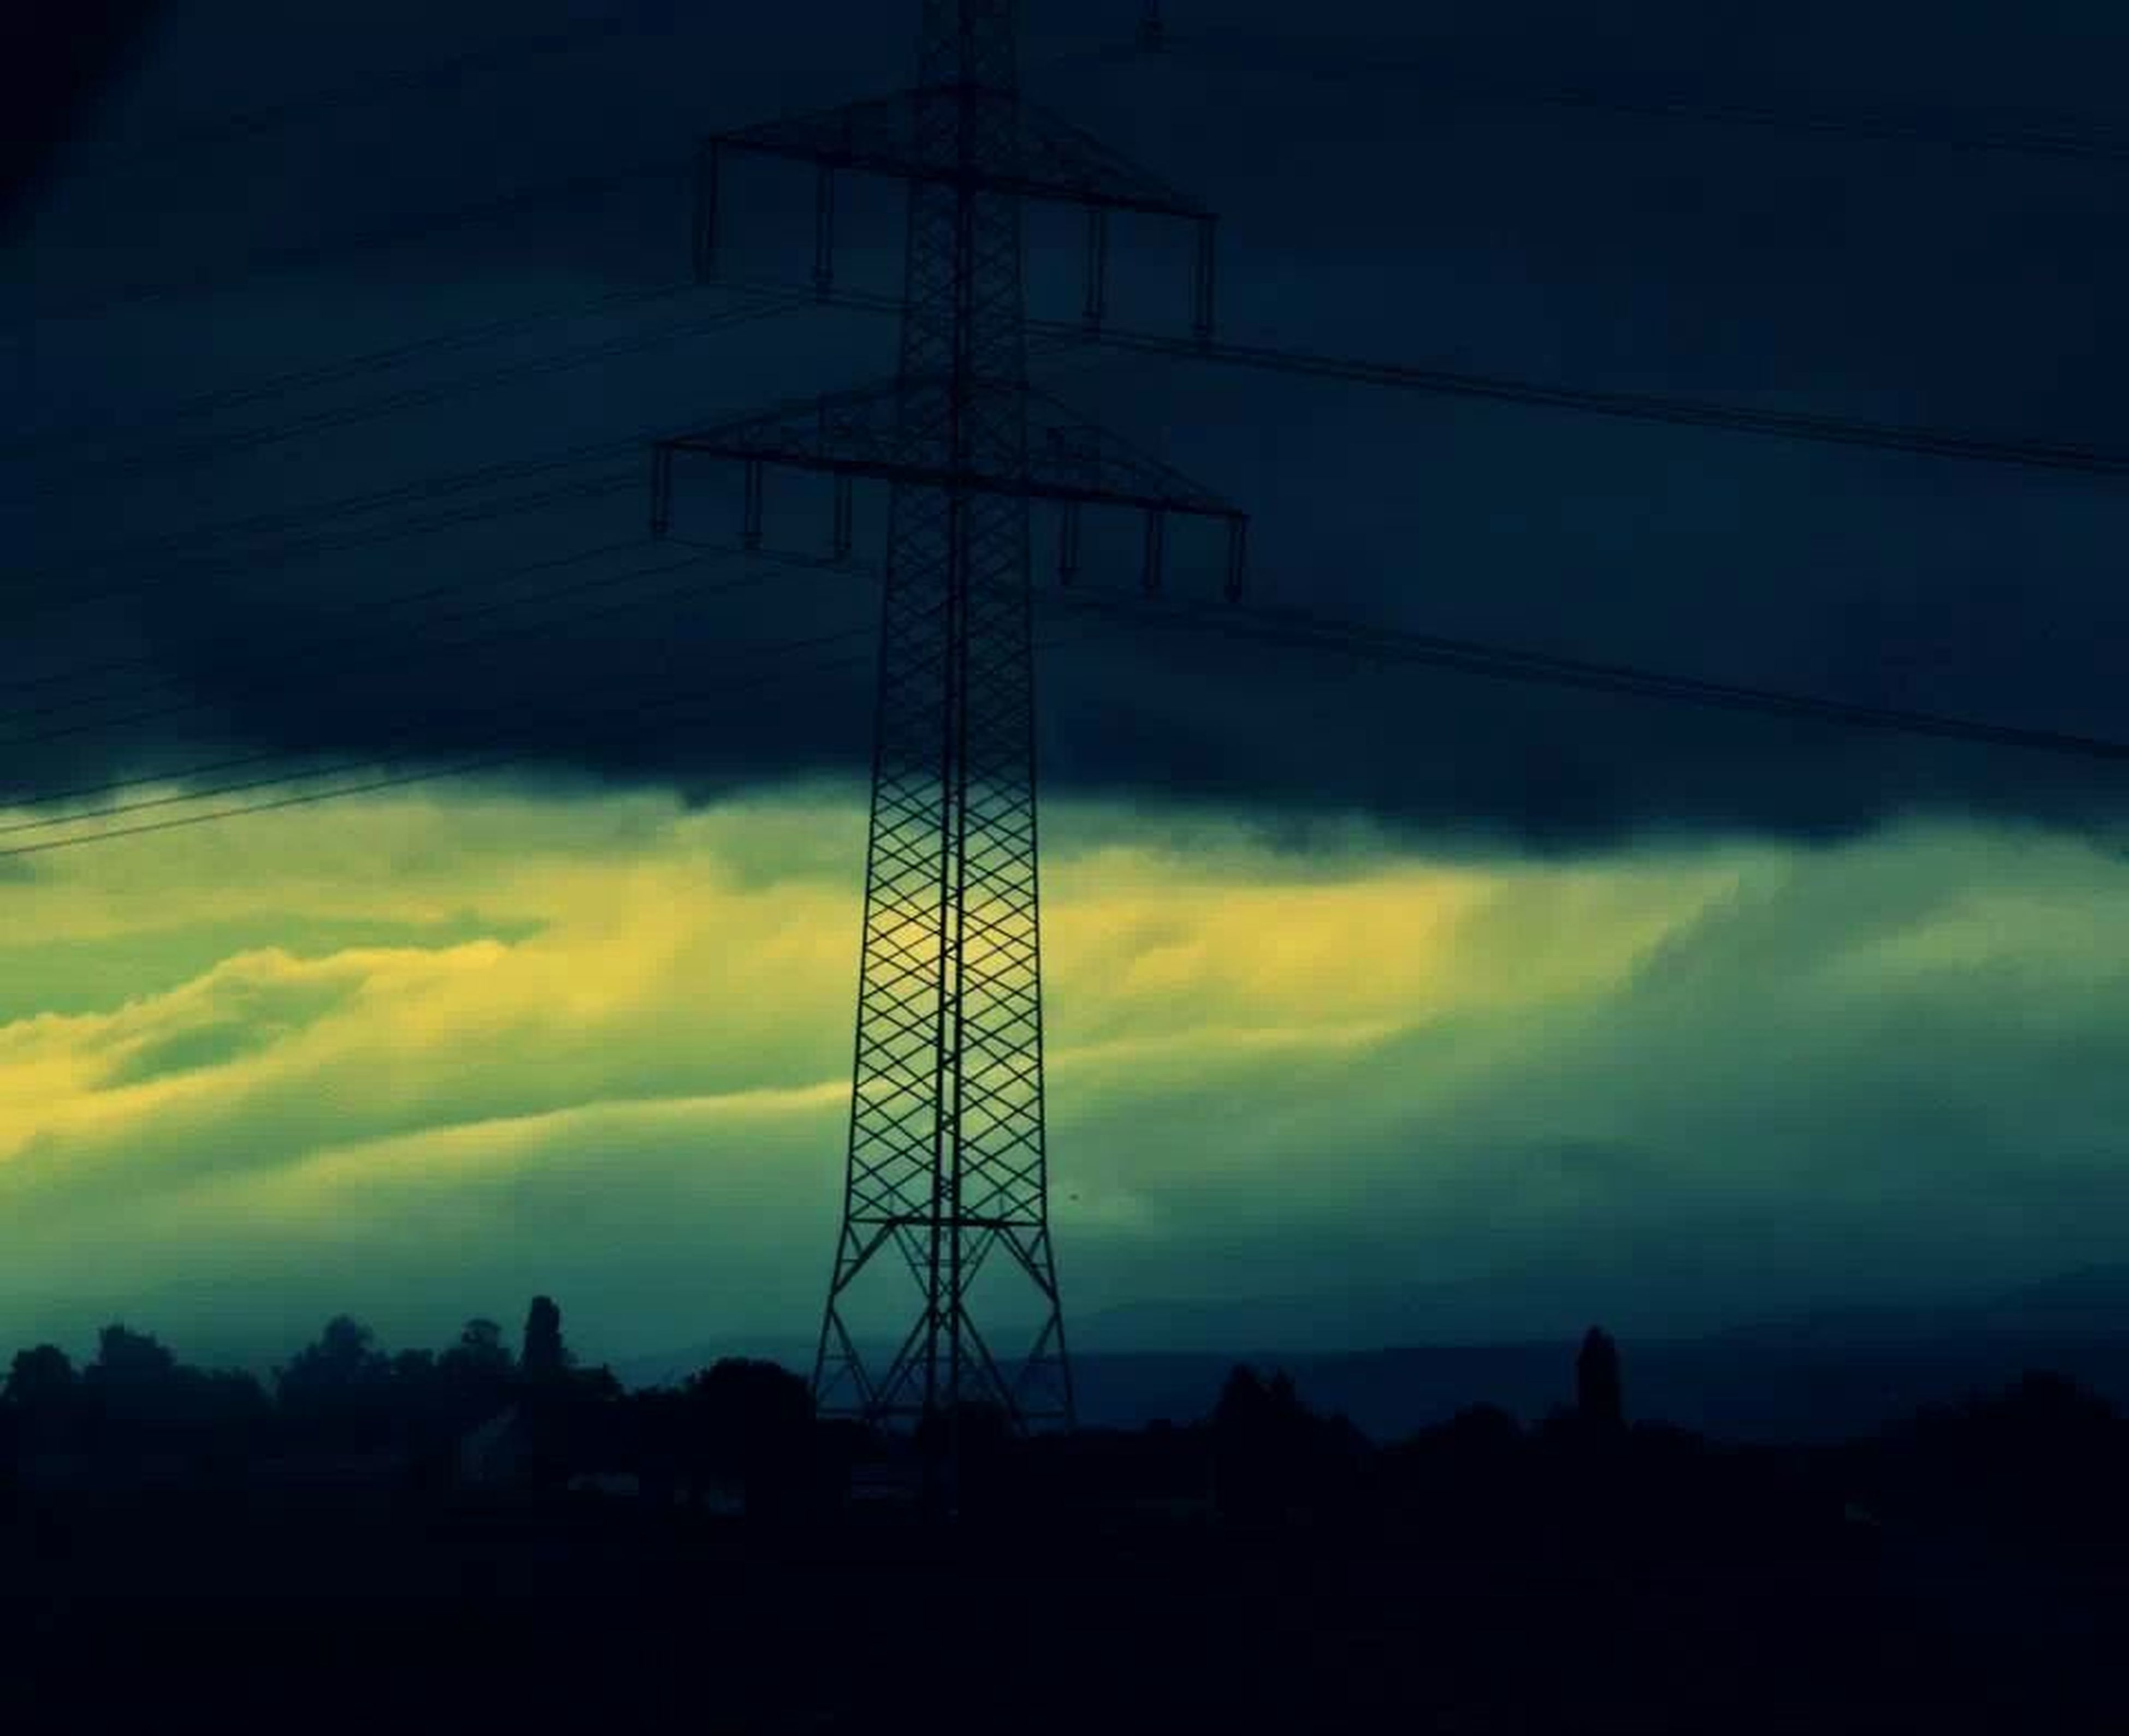 silhouette, electricity pylon, electricity, power supply, power line, sunset, fuel and power generation, sky, connection, technology, low angle view, cloud - sky, cable, built structure, dusk, cloud, nature, no people, outdoors, dark